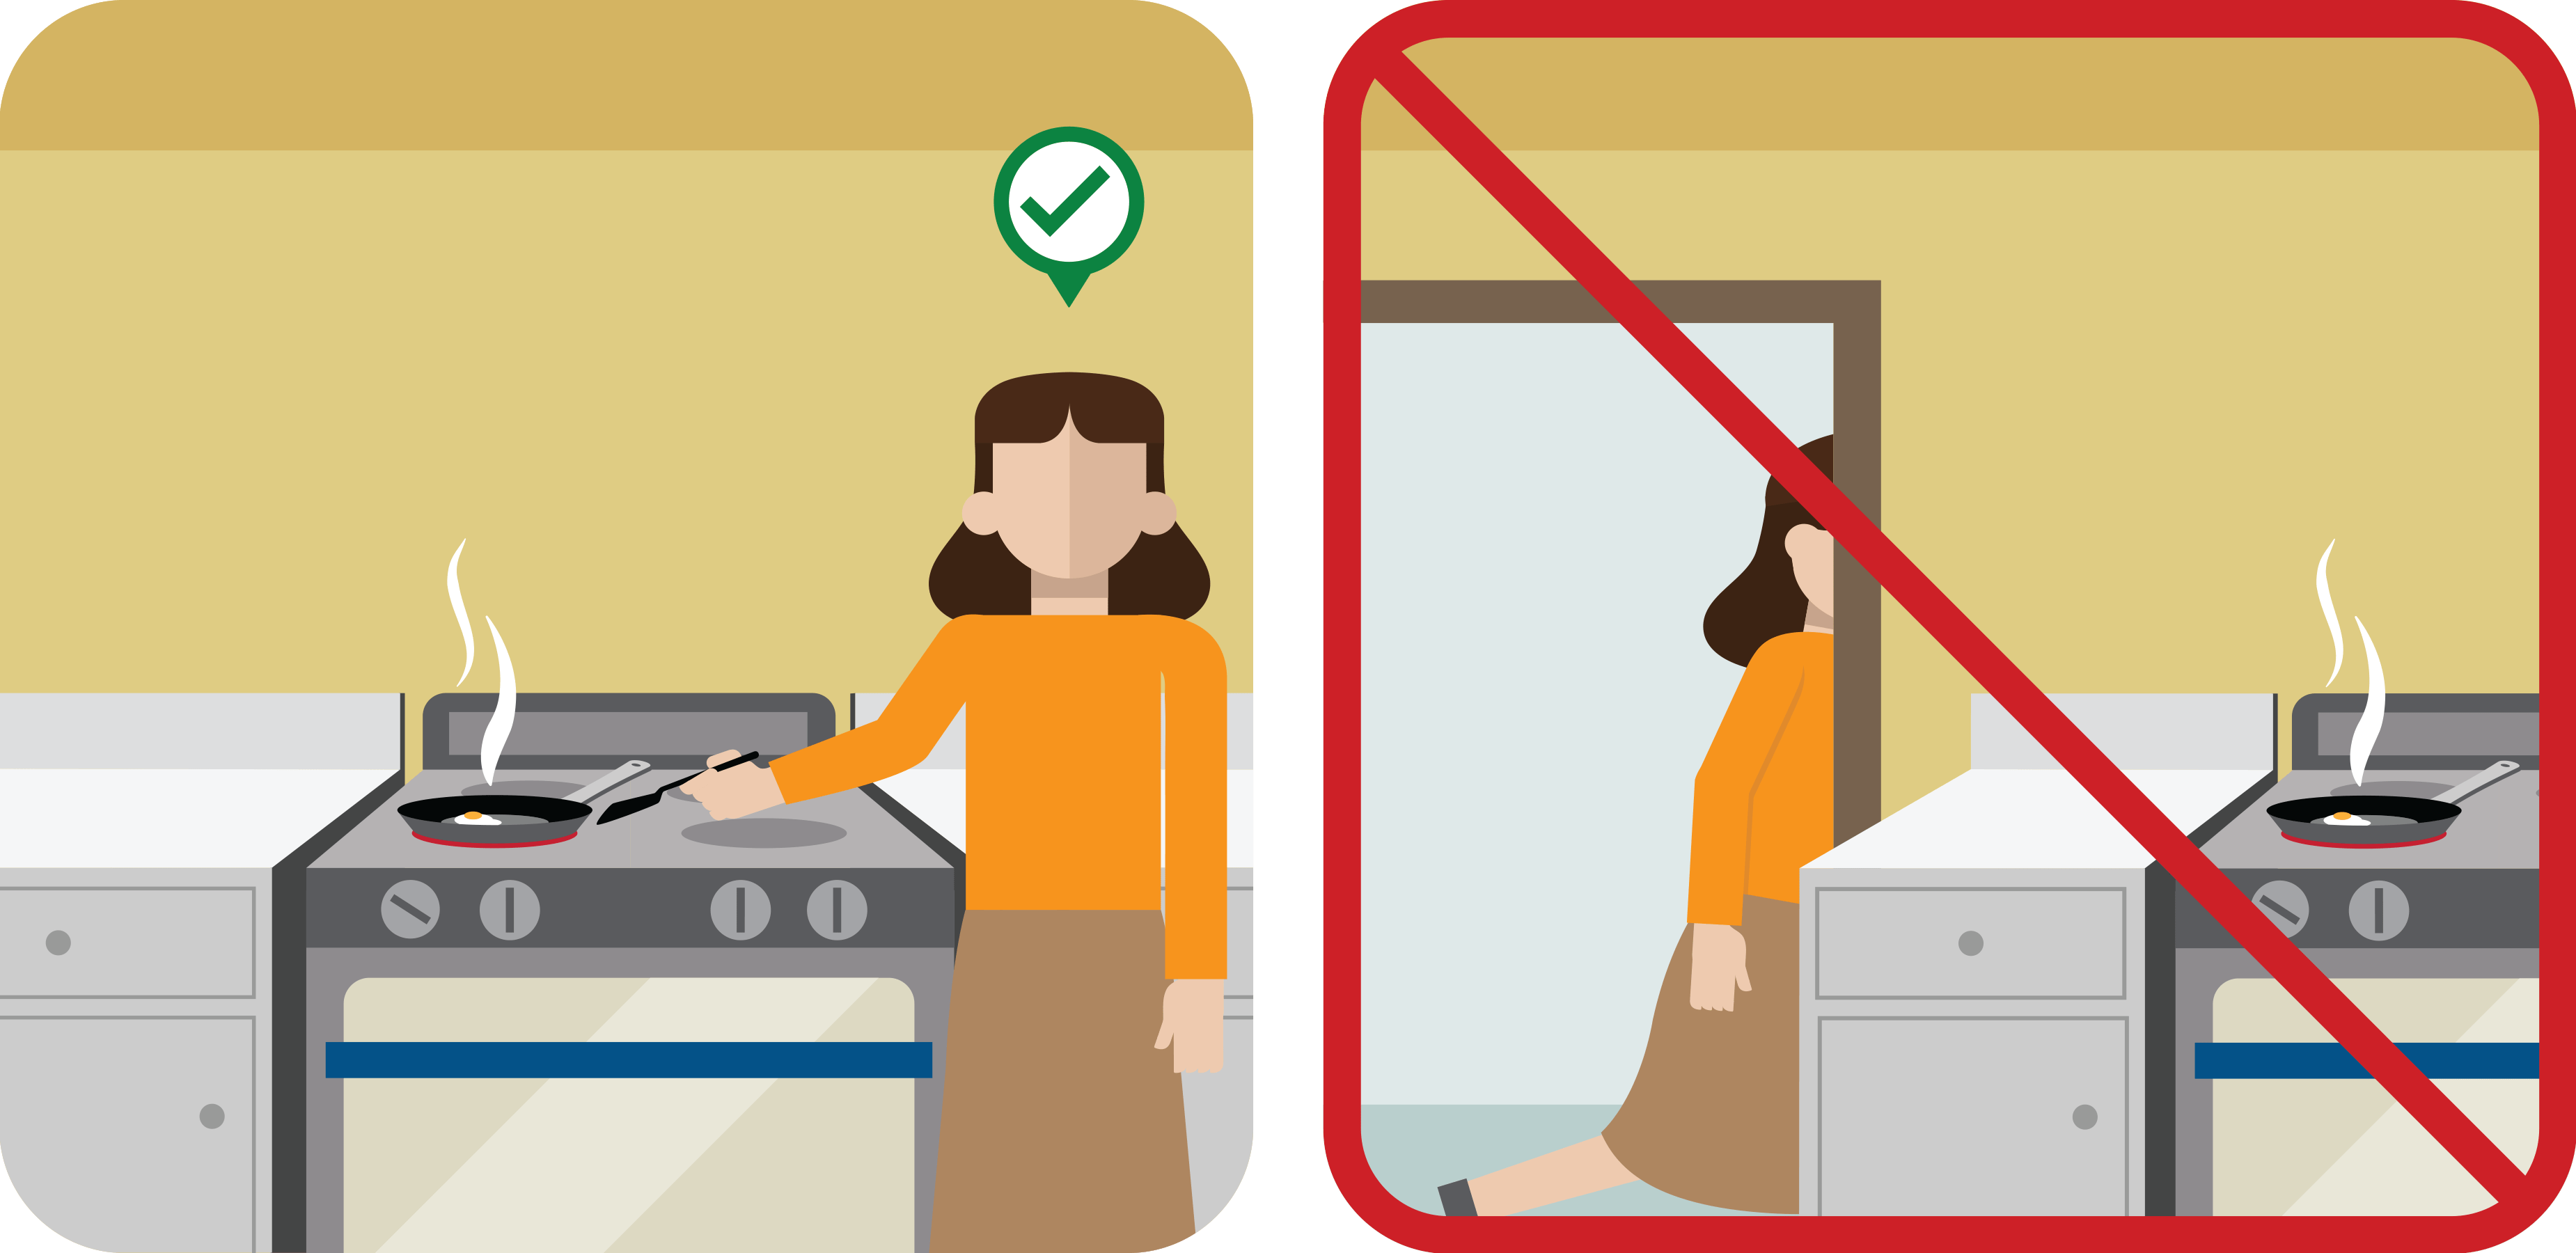 Don't leave stove unattended graphic